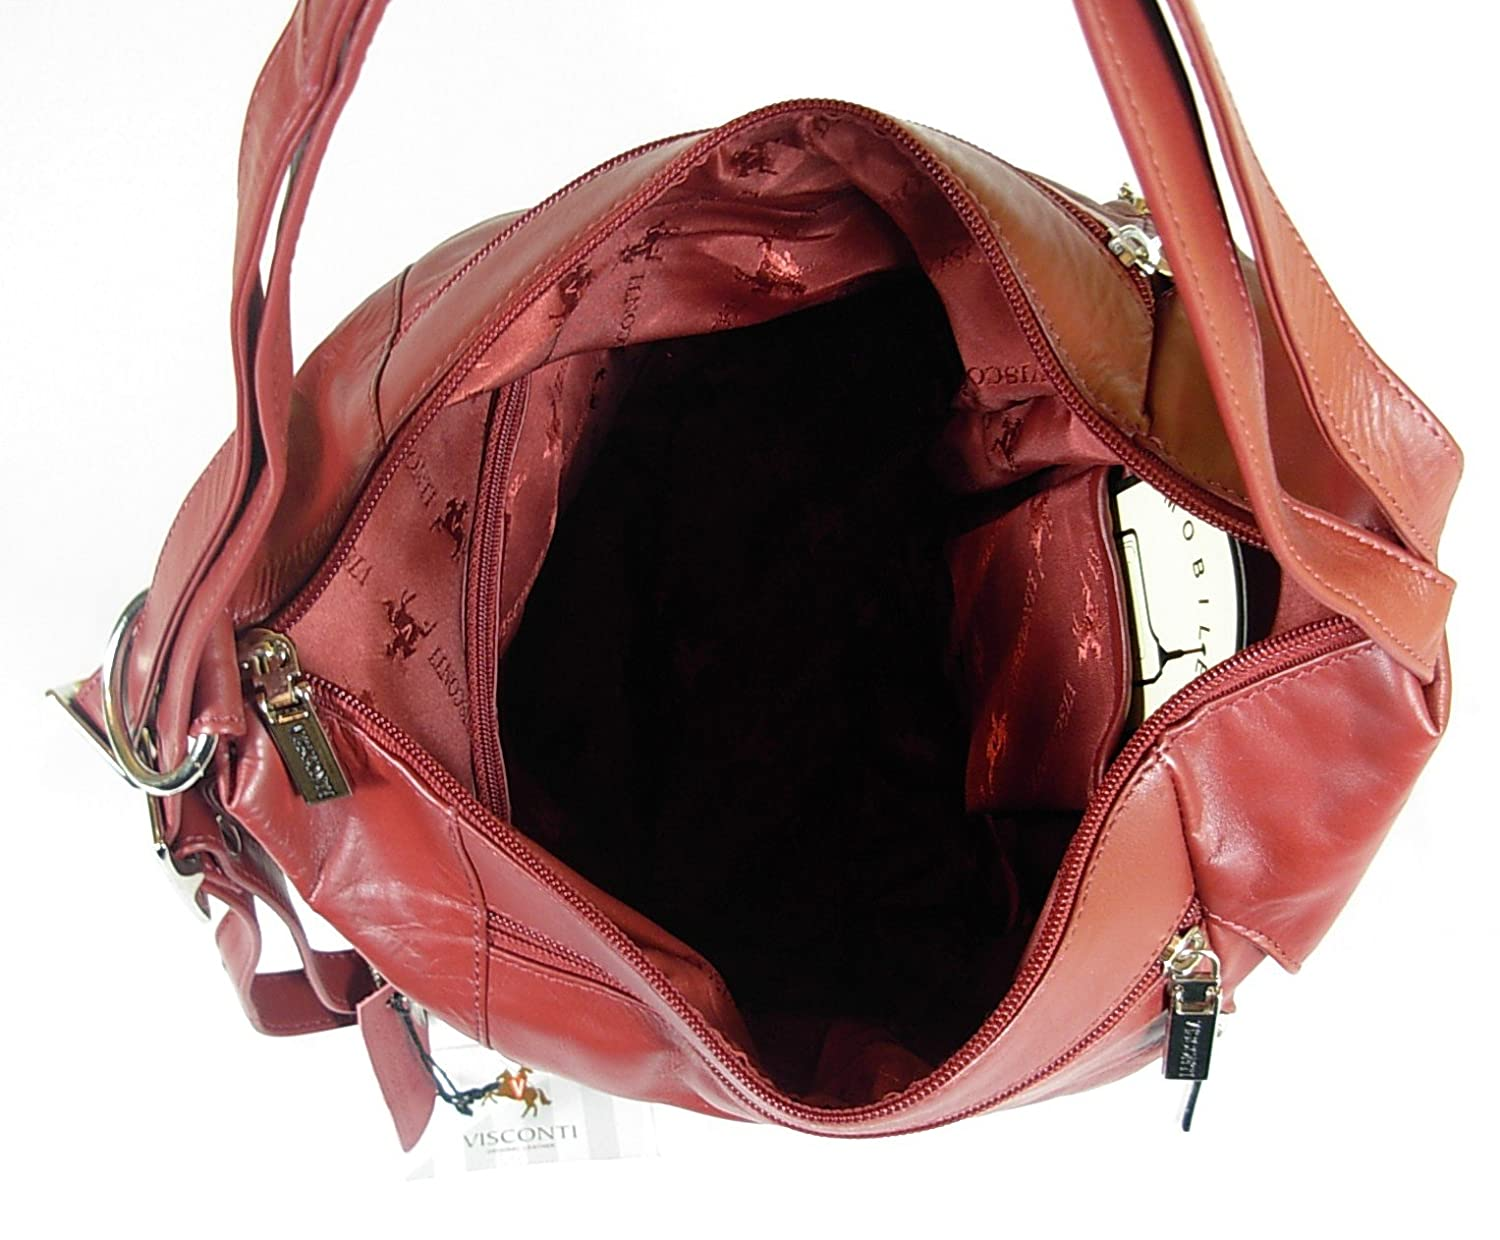 7cc20037e529 New girls ladies gorgeous Visconti dark red soft leather backpack bag style  18357  Amazon.co.uk  Luggage